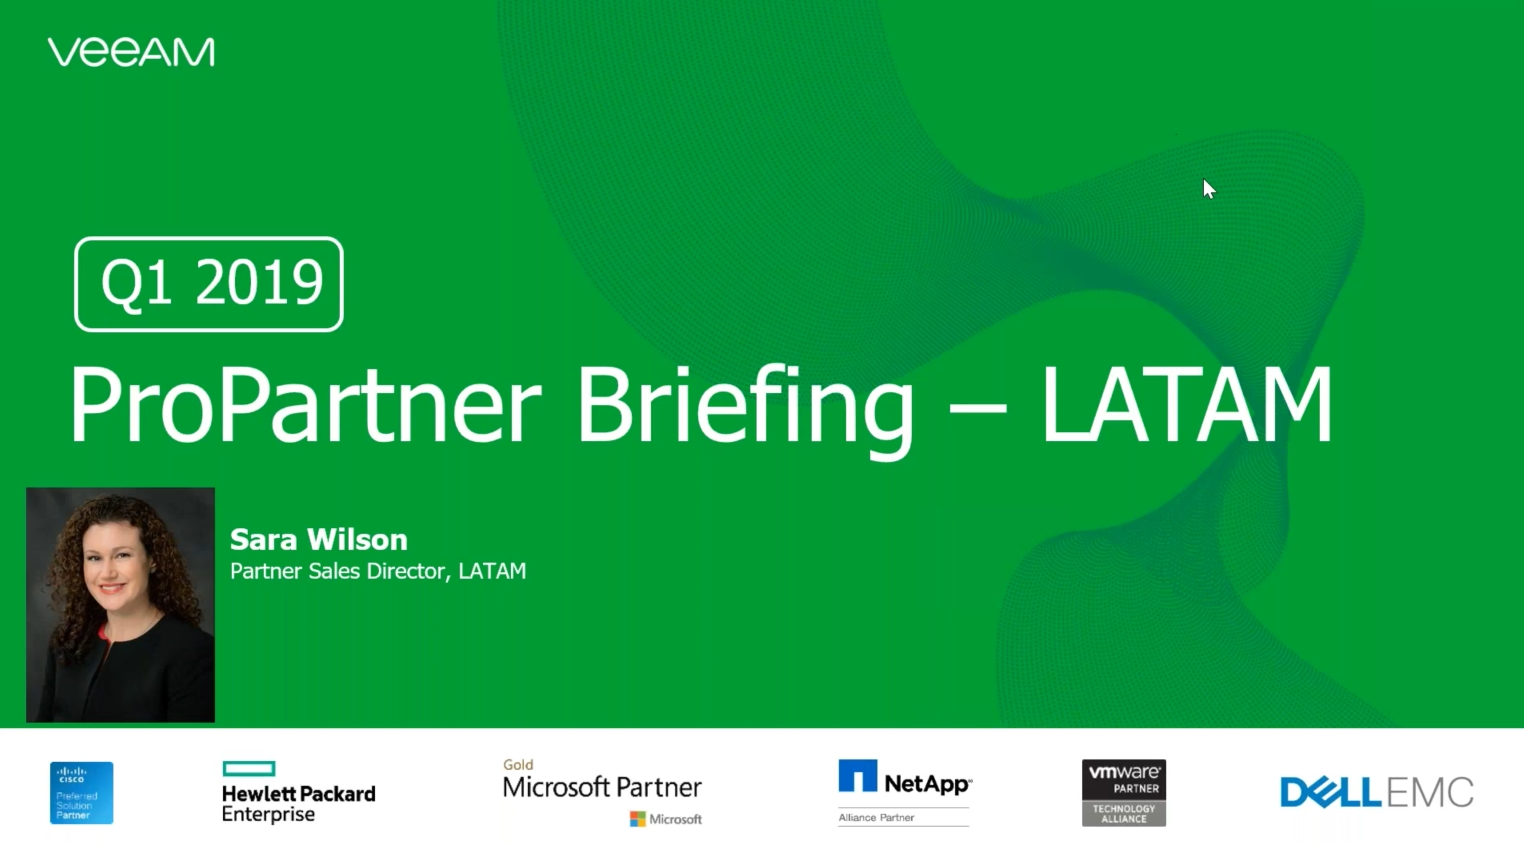 ProPartner Briefing: NUEVAS Reglas para el Programa ProPartner LATAM Veeam 2019